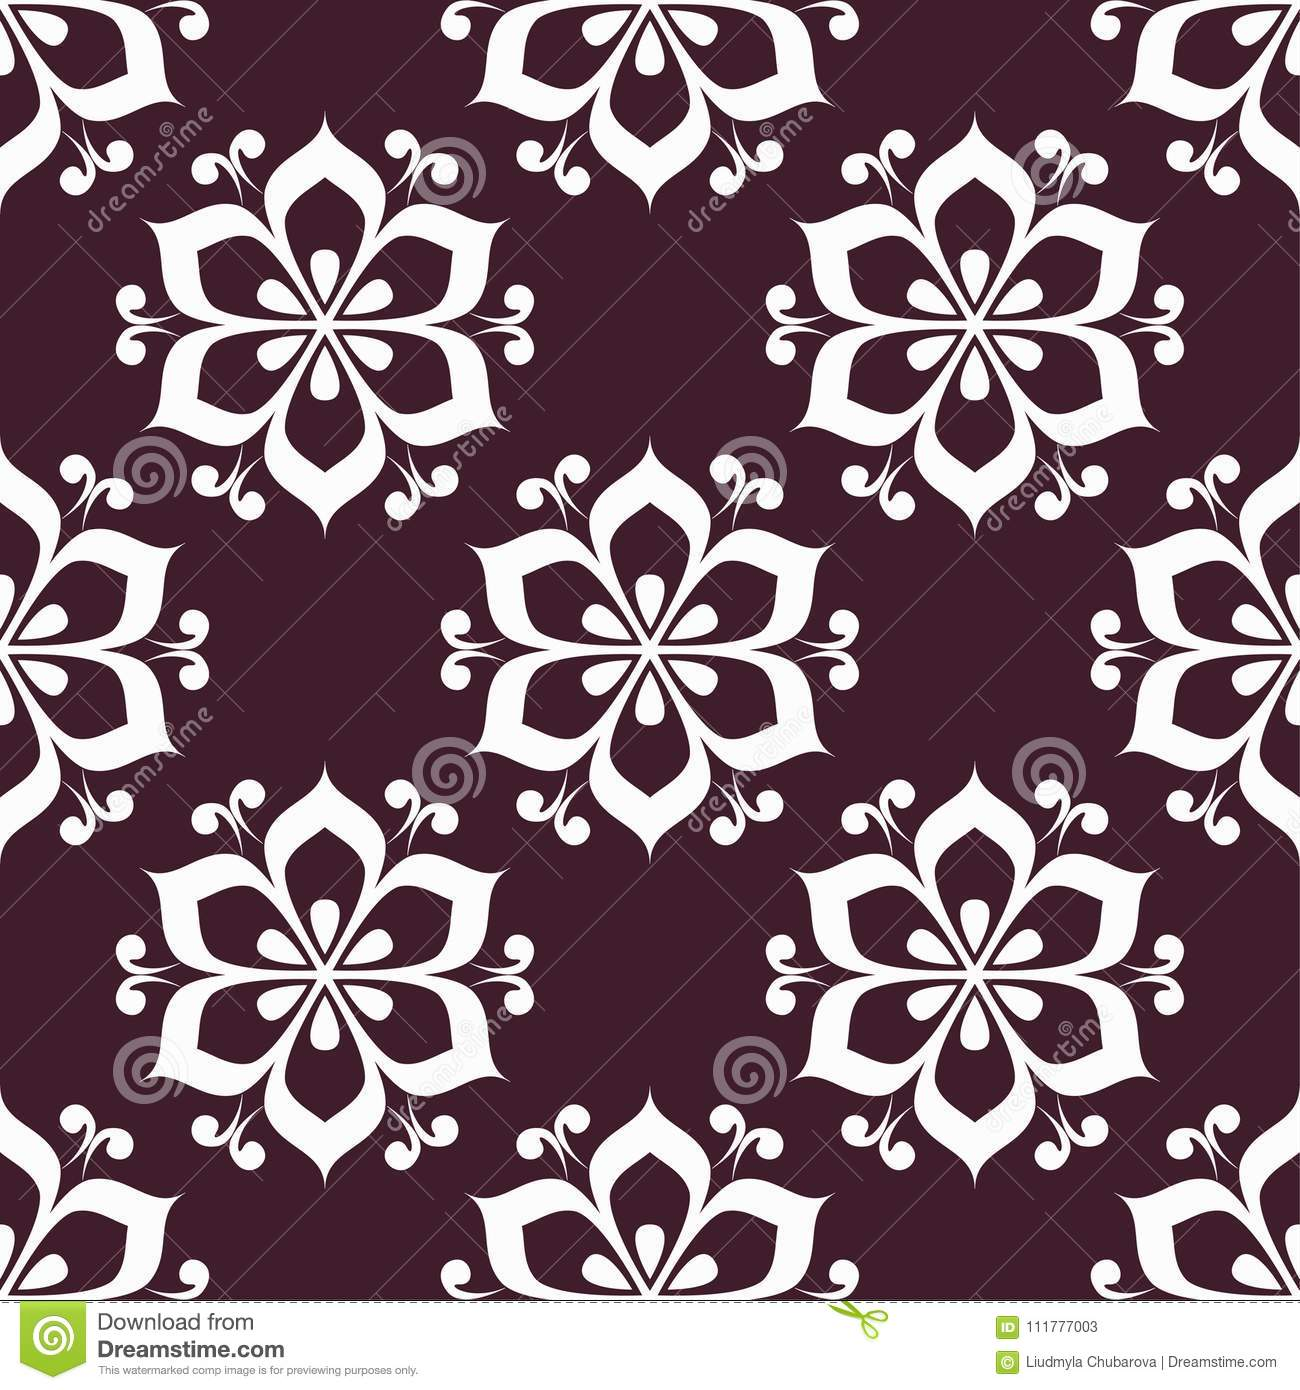 Floral maroon seamless pattern. Background with fower elements for wallpapers